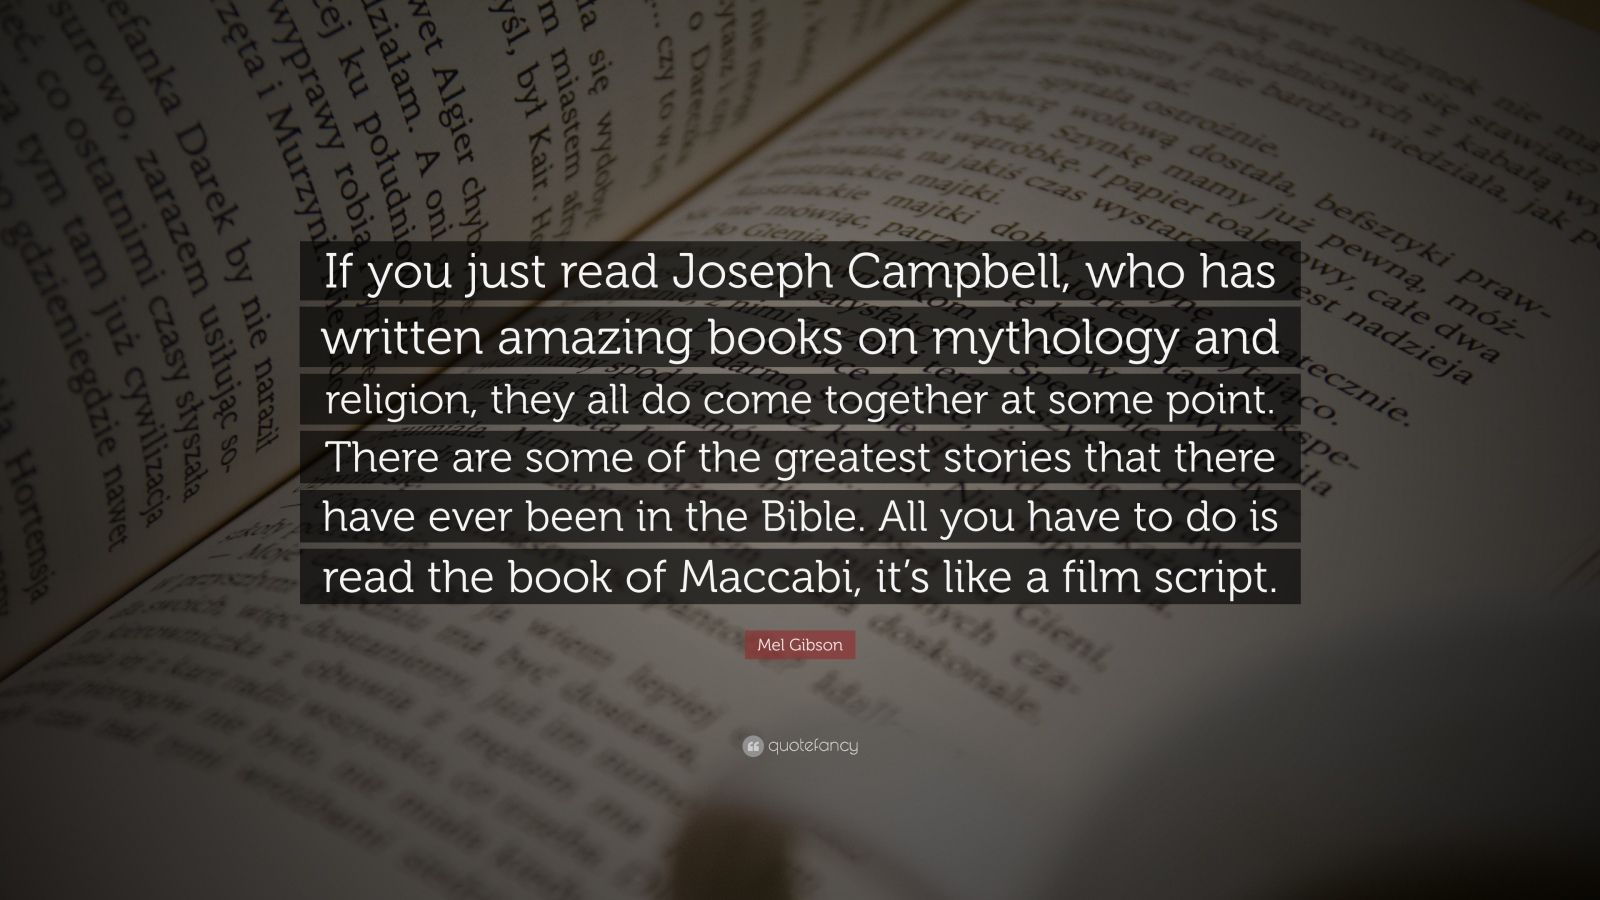 """Mel Gibson Quote: """"If you just read Joseph Campbell, who has written amazing books on mythology and religion, they all do come together at some point. There are some of the greatest stories that there have ever been in the Bible. All you have to do is read the book of Maccabi, it's like a film script."""""""